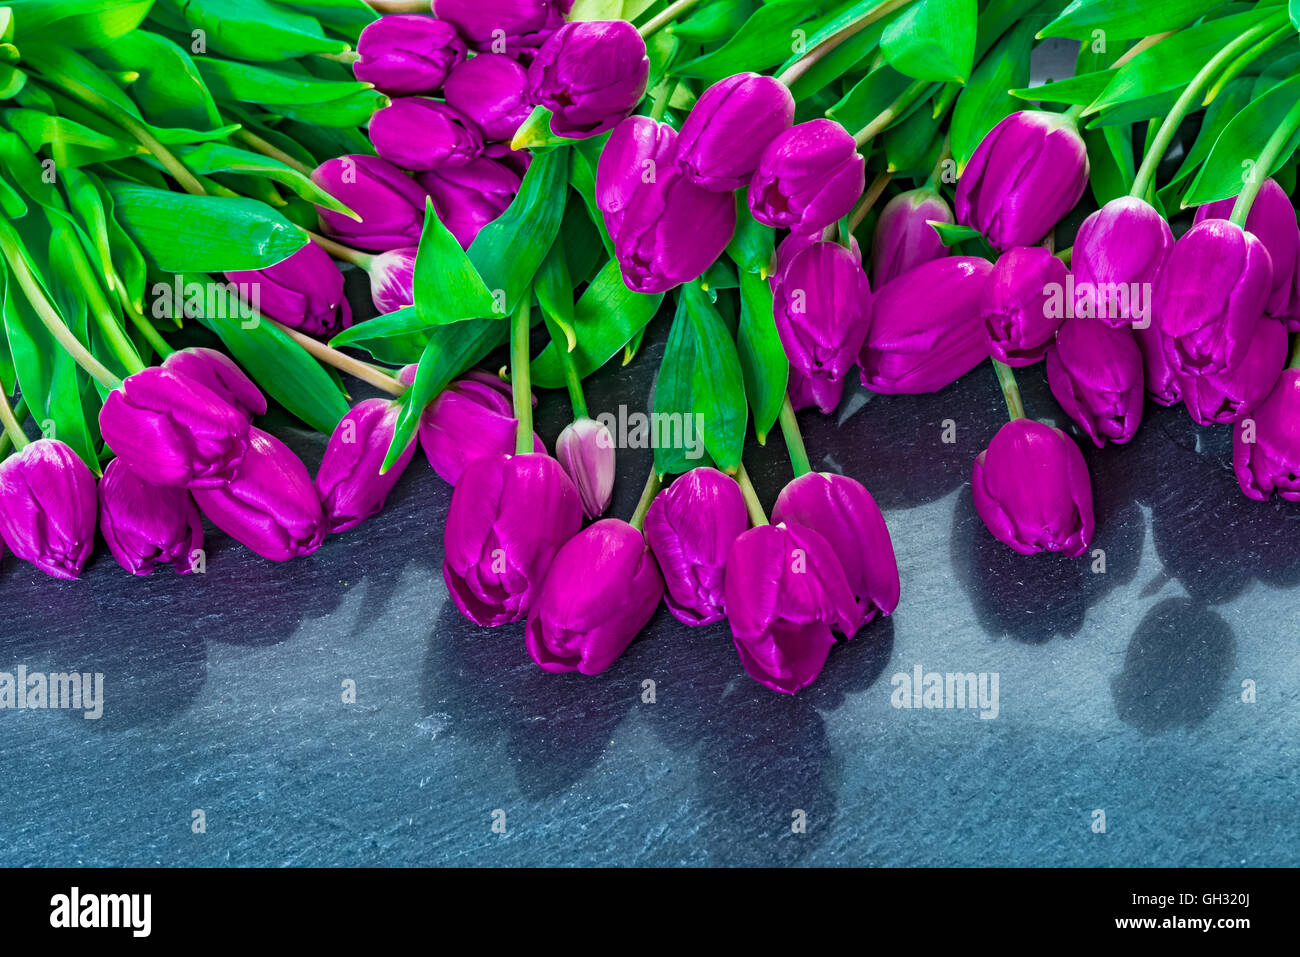 Anniversary colorful tulip flower bouquet on grey background for birthday, mothers day or valentines day gift, flat Stock Photo